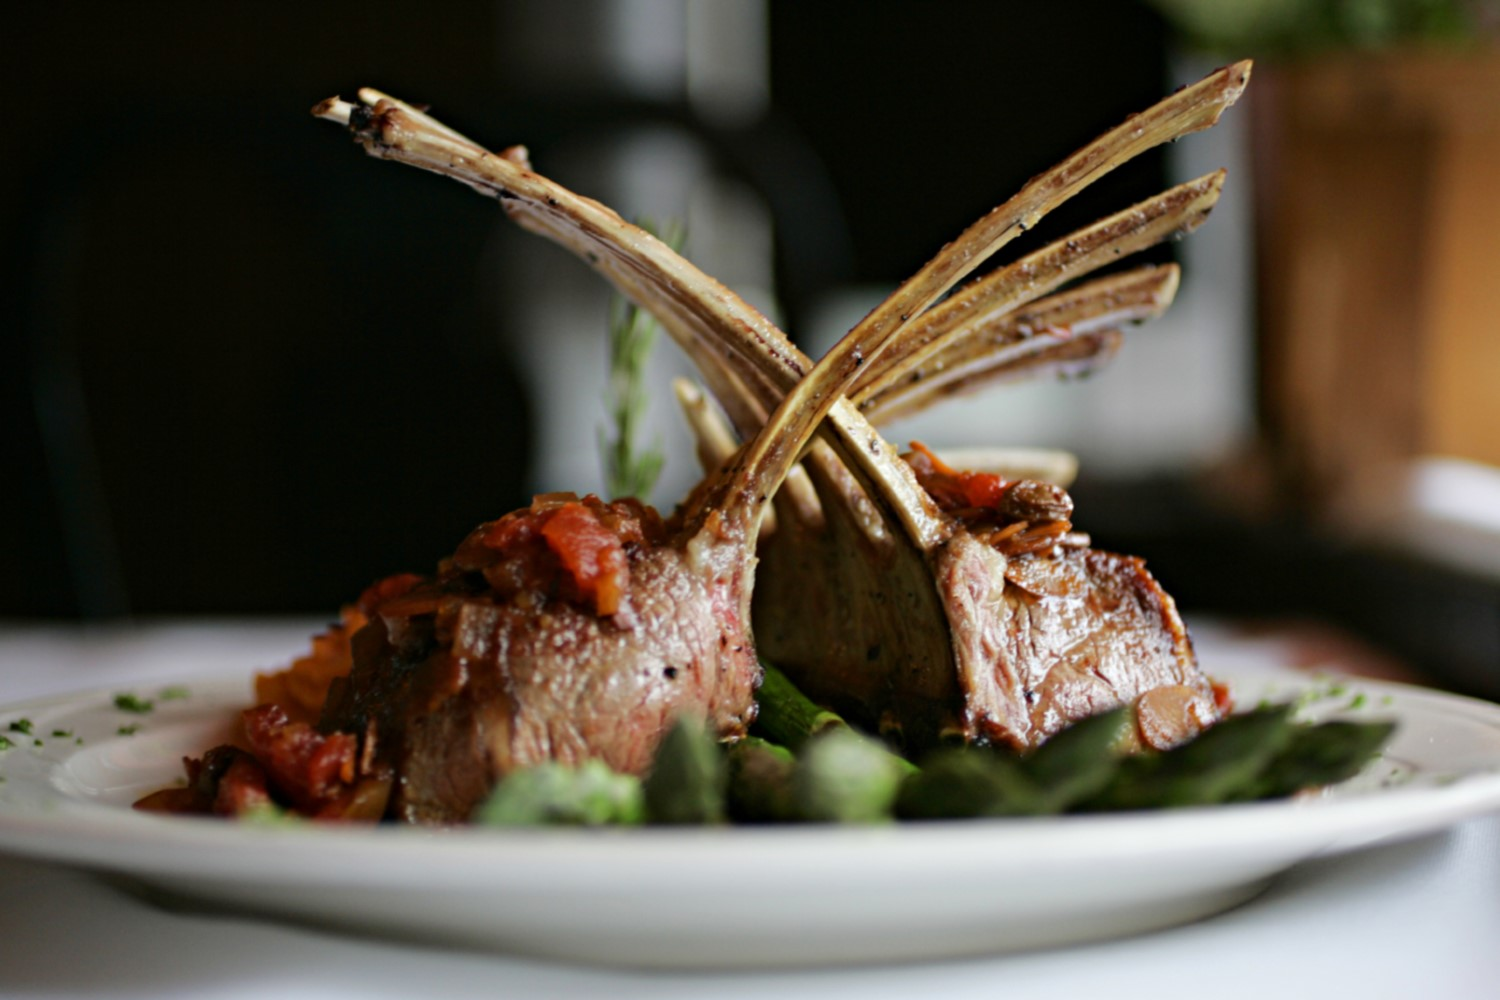 Rack of LambRack of Lamb